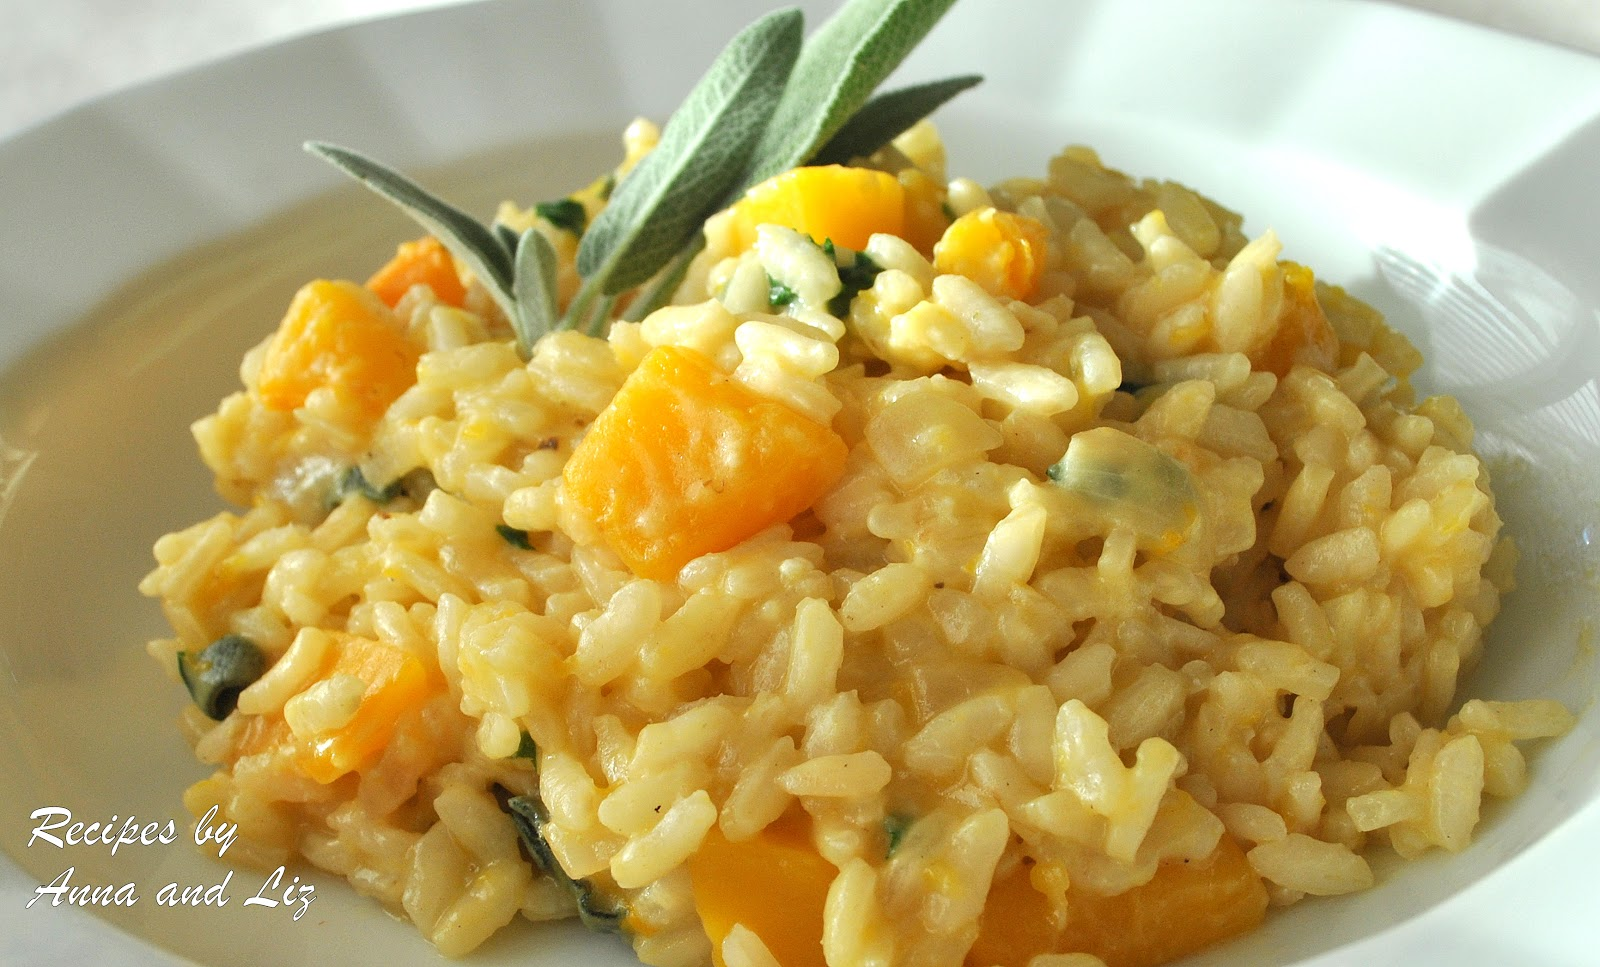 ... creamy butternut squash orzotto barley risotto with toasted pecans